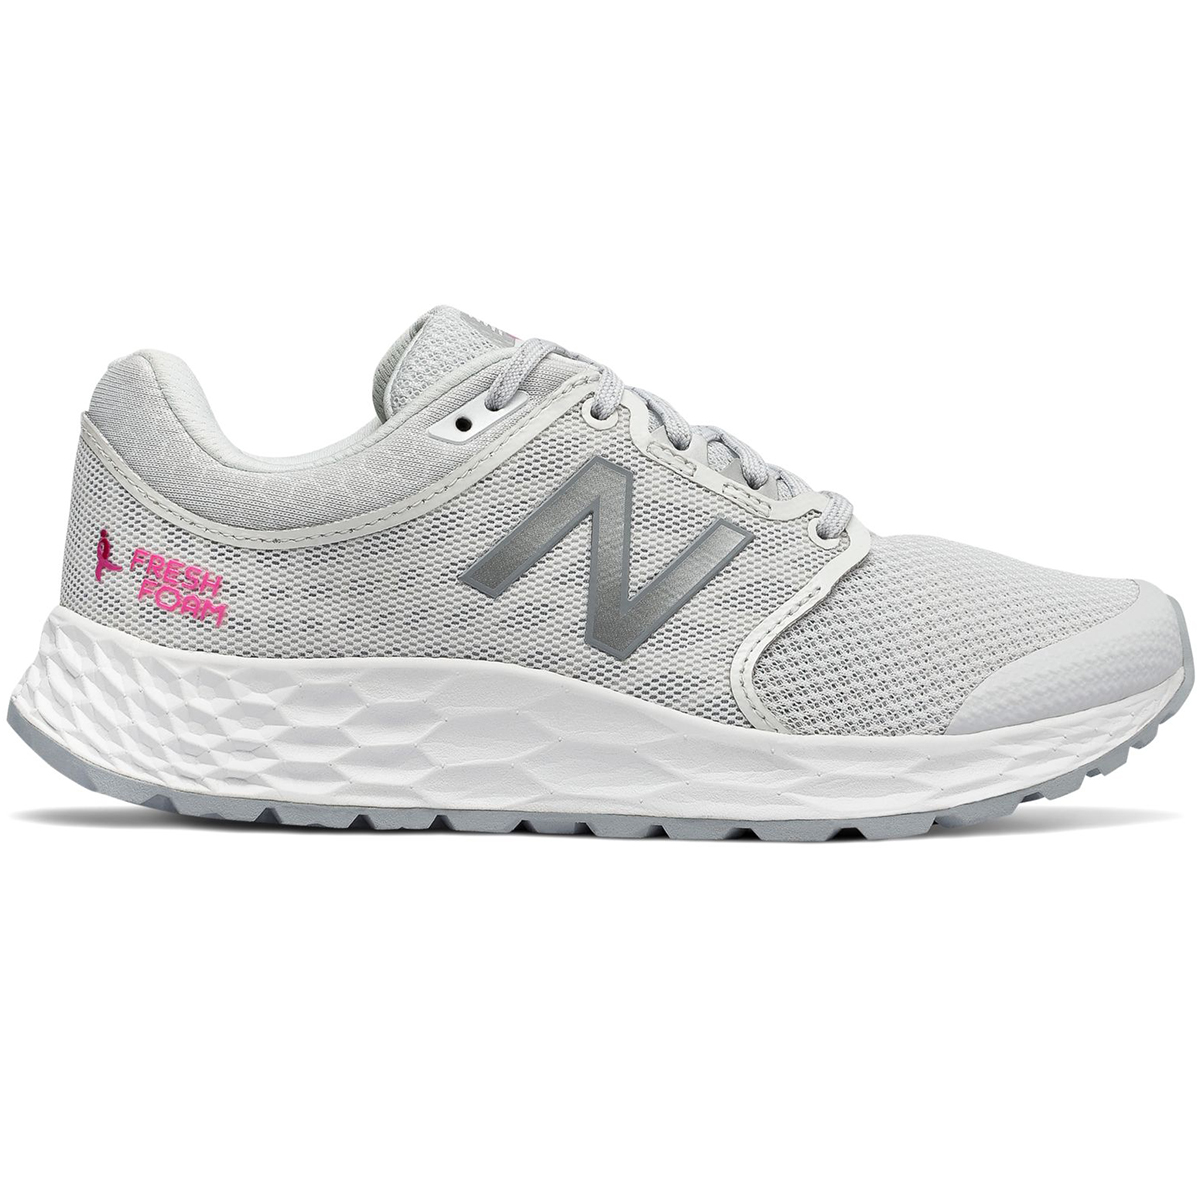 New Balance Women's 1165V1 Walking Shoes - White, 6.5